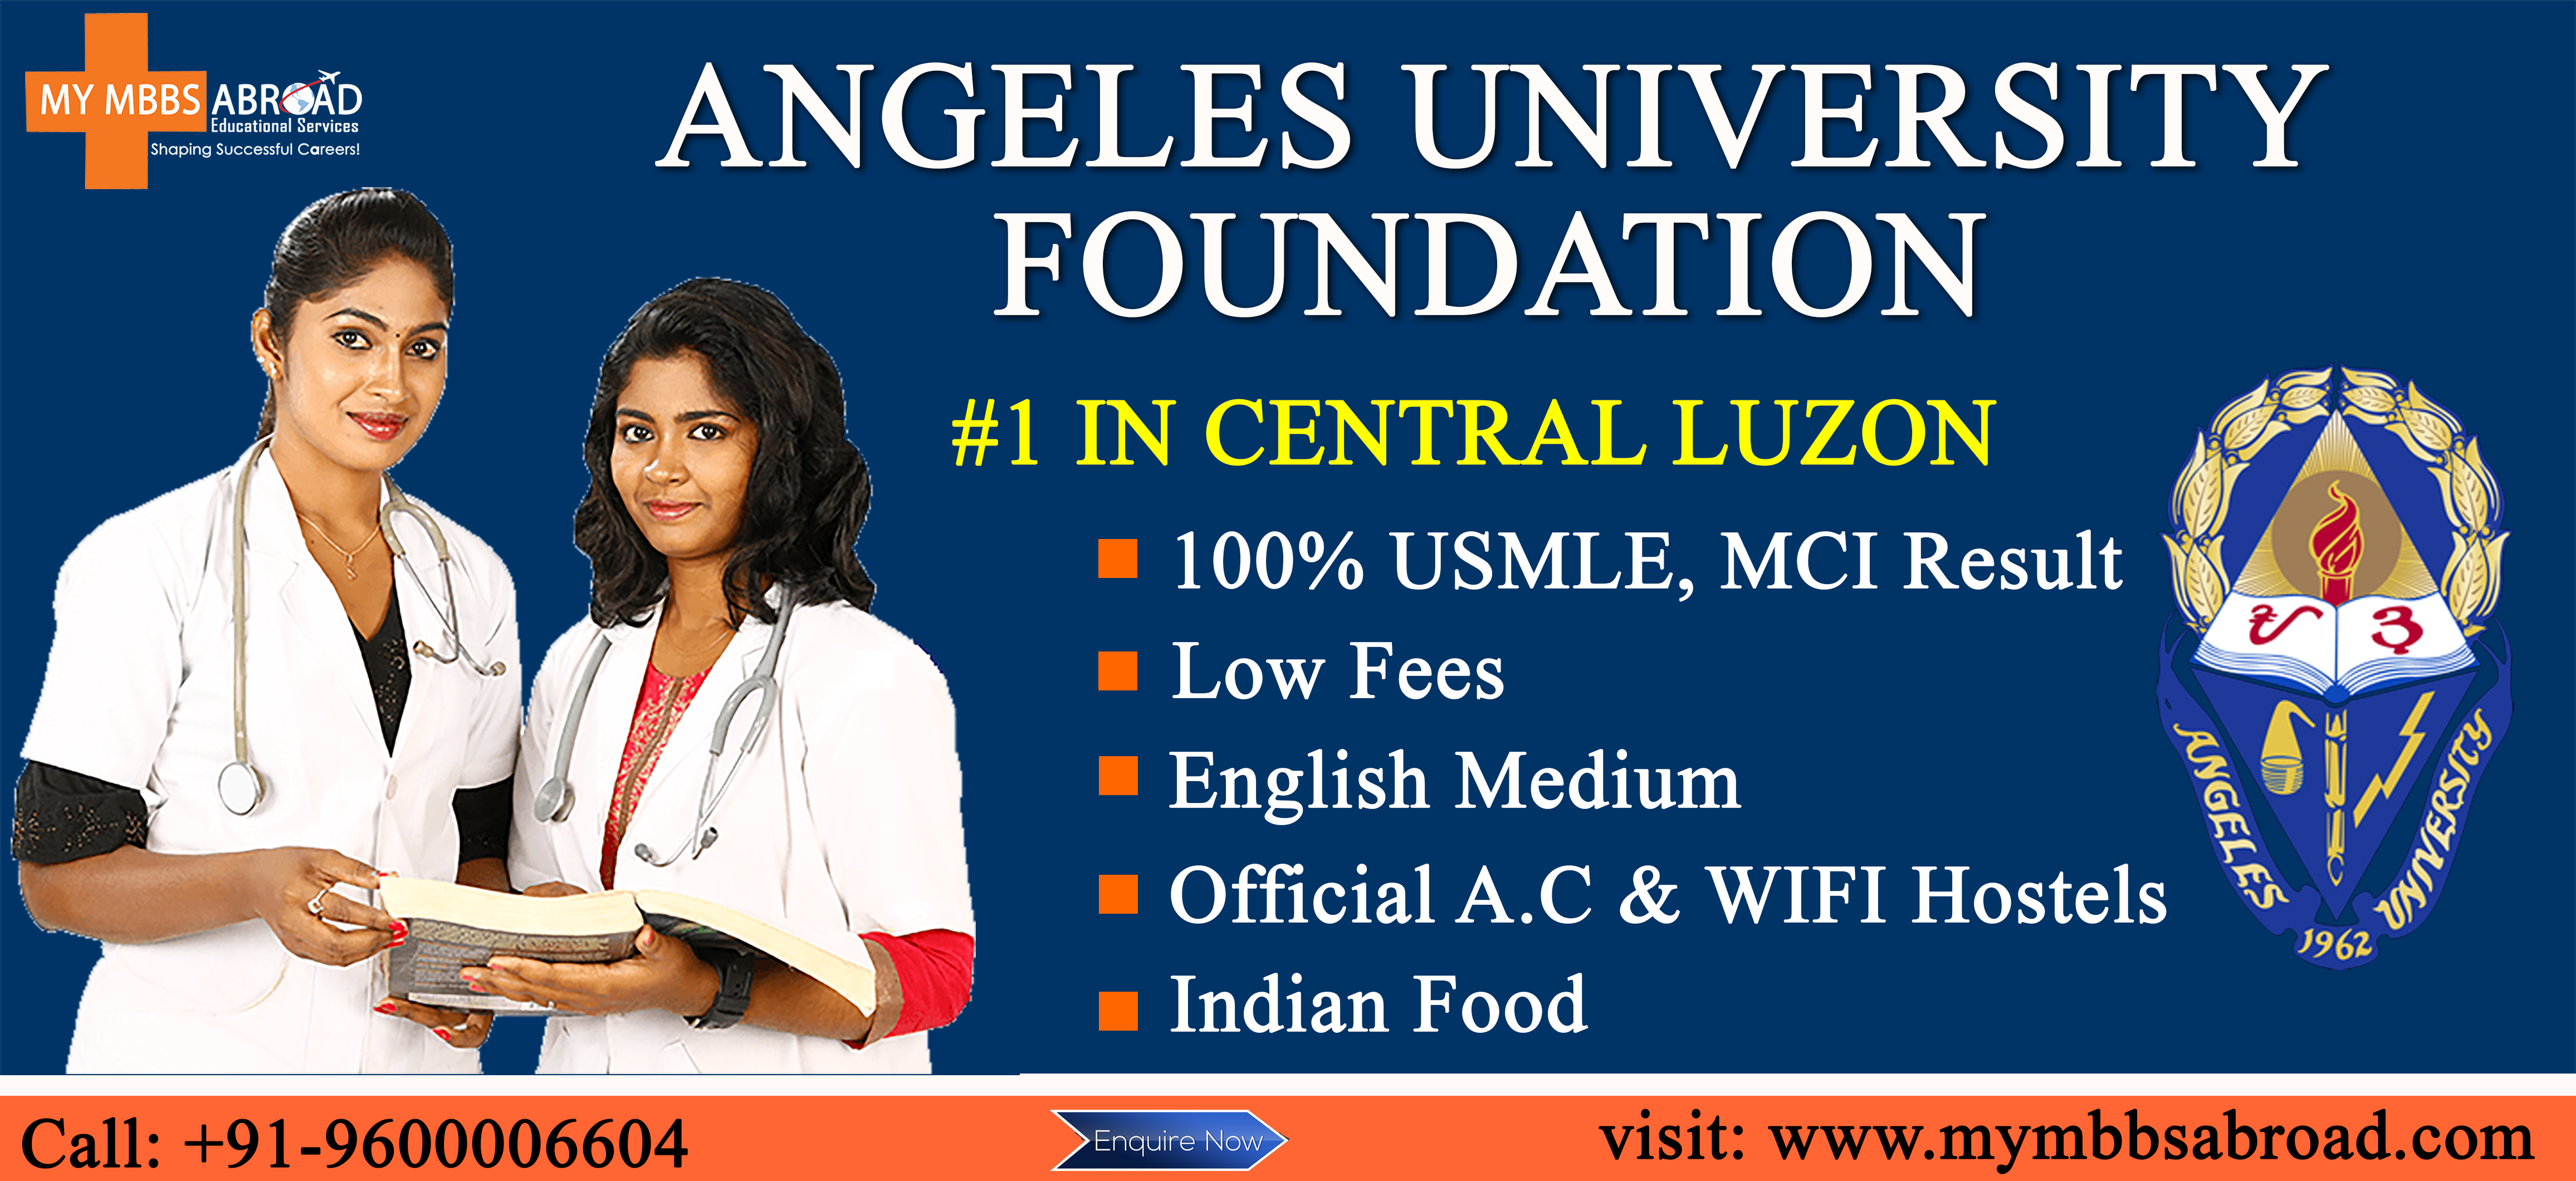 Md Mbbs In Philippines For Indianstudents Save 70 Tuition Fees Student Tuition Fees Educational Service